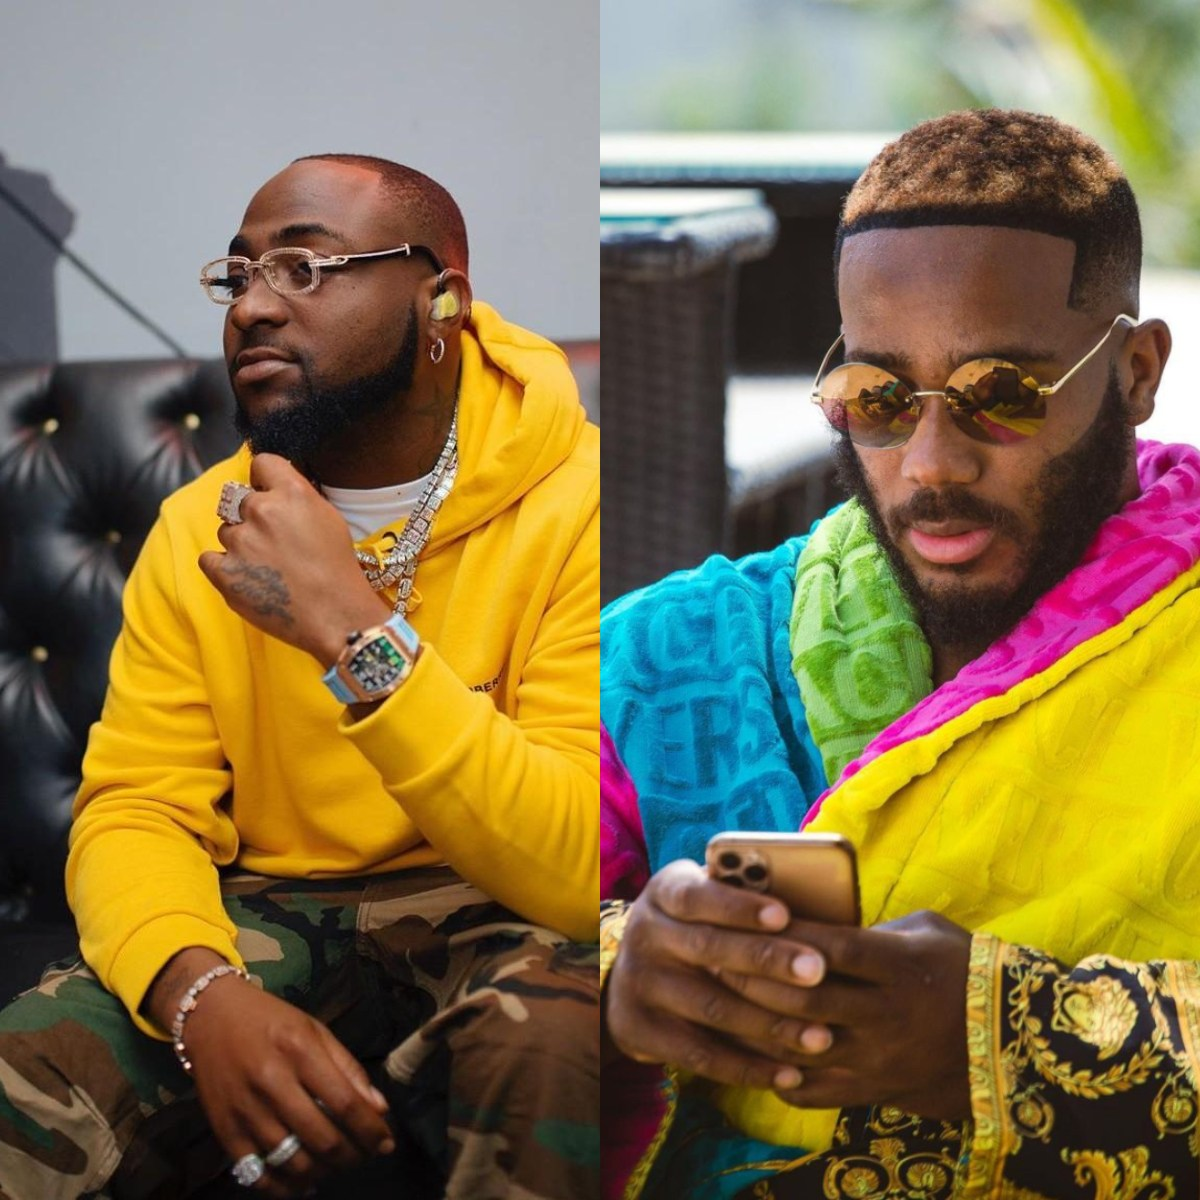 After Davido, Peruzzi, And Zlatan Performed In Kiddwaya's Hometown, See What Kidd Told Them